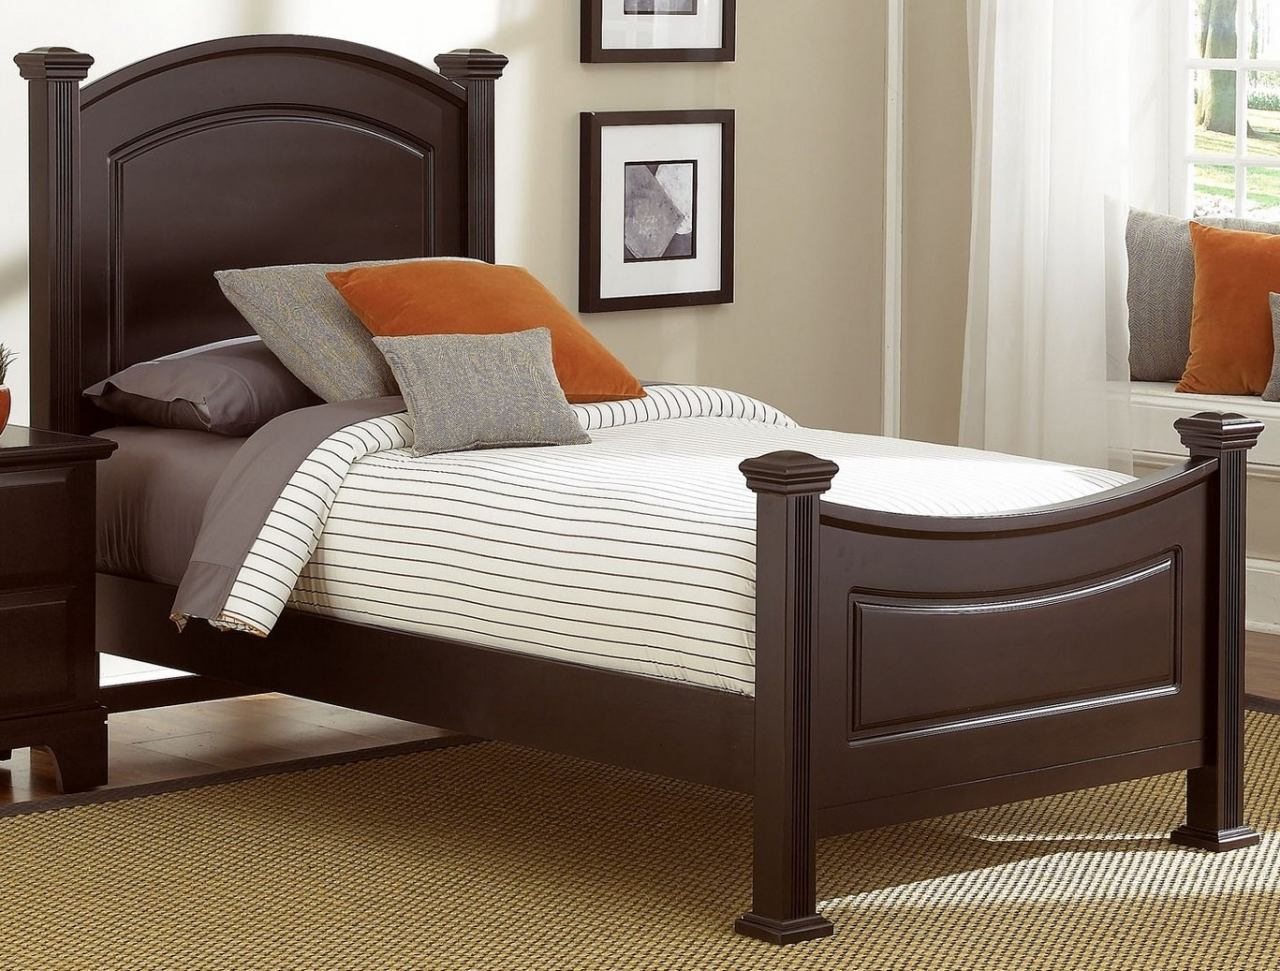 All-American Hamilton/Franklin Twin Panel Bed in Merlot